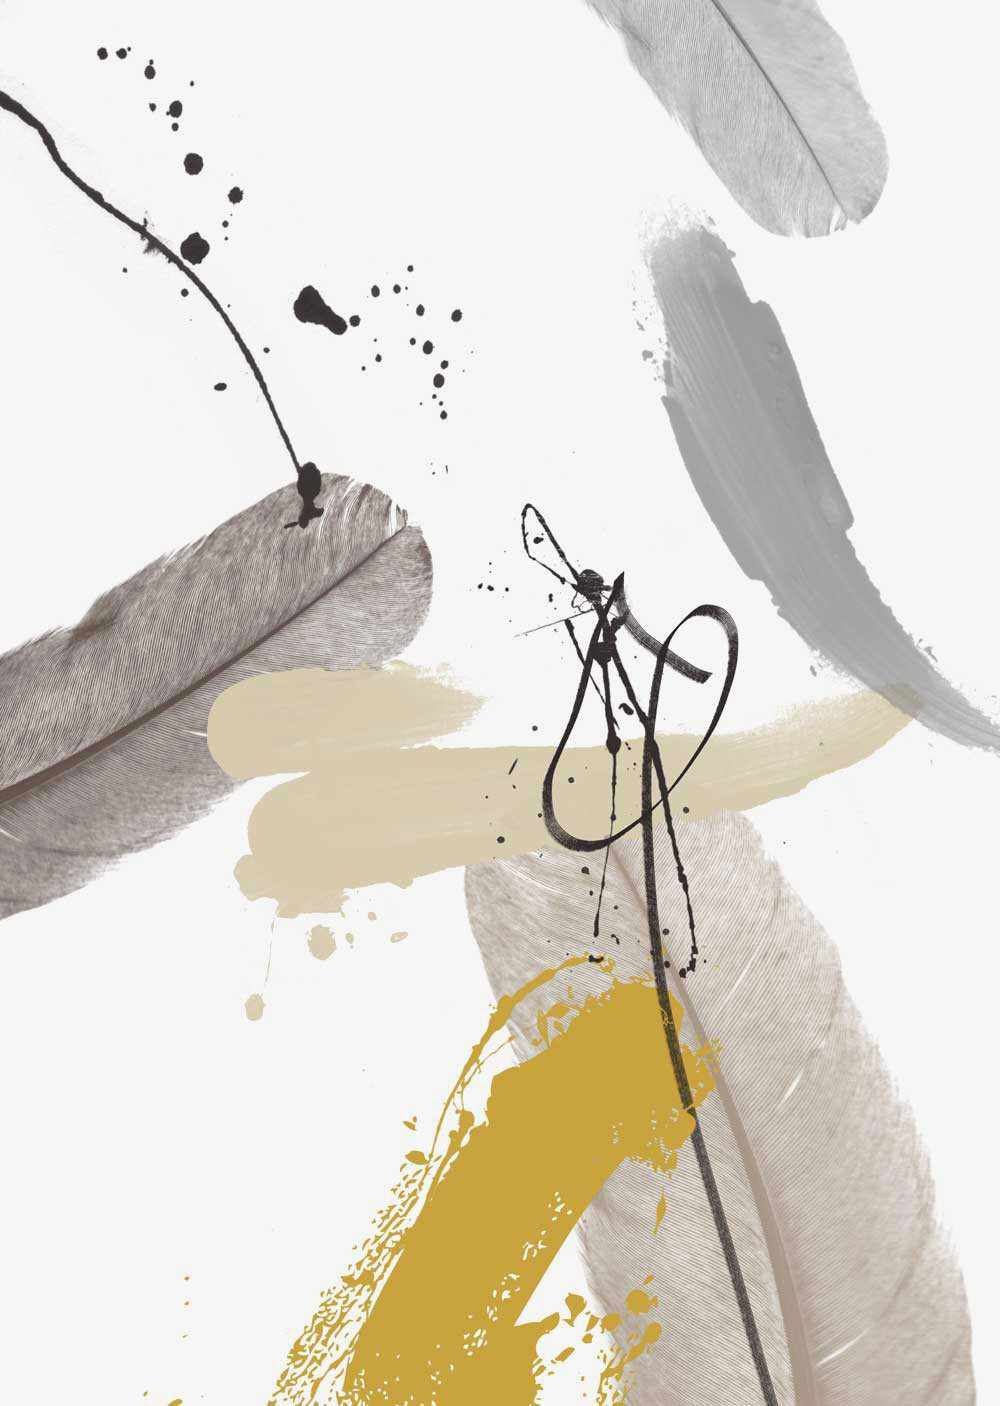 Abstract Grey & Mustard Wall Art Print II